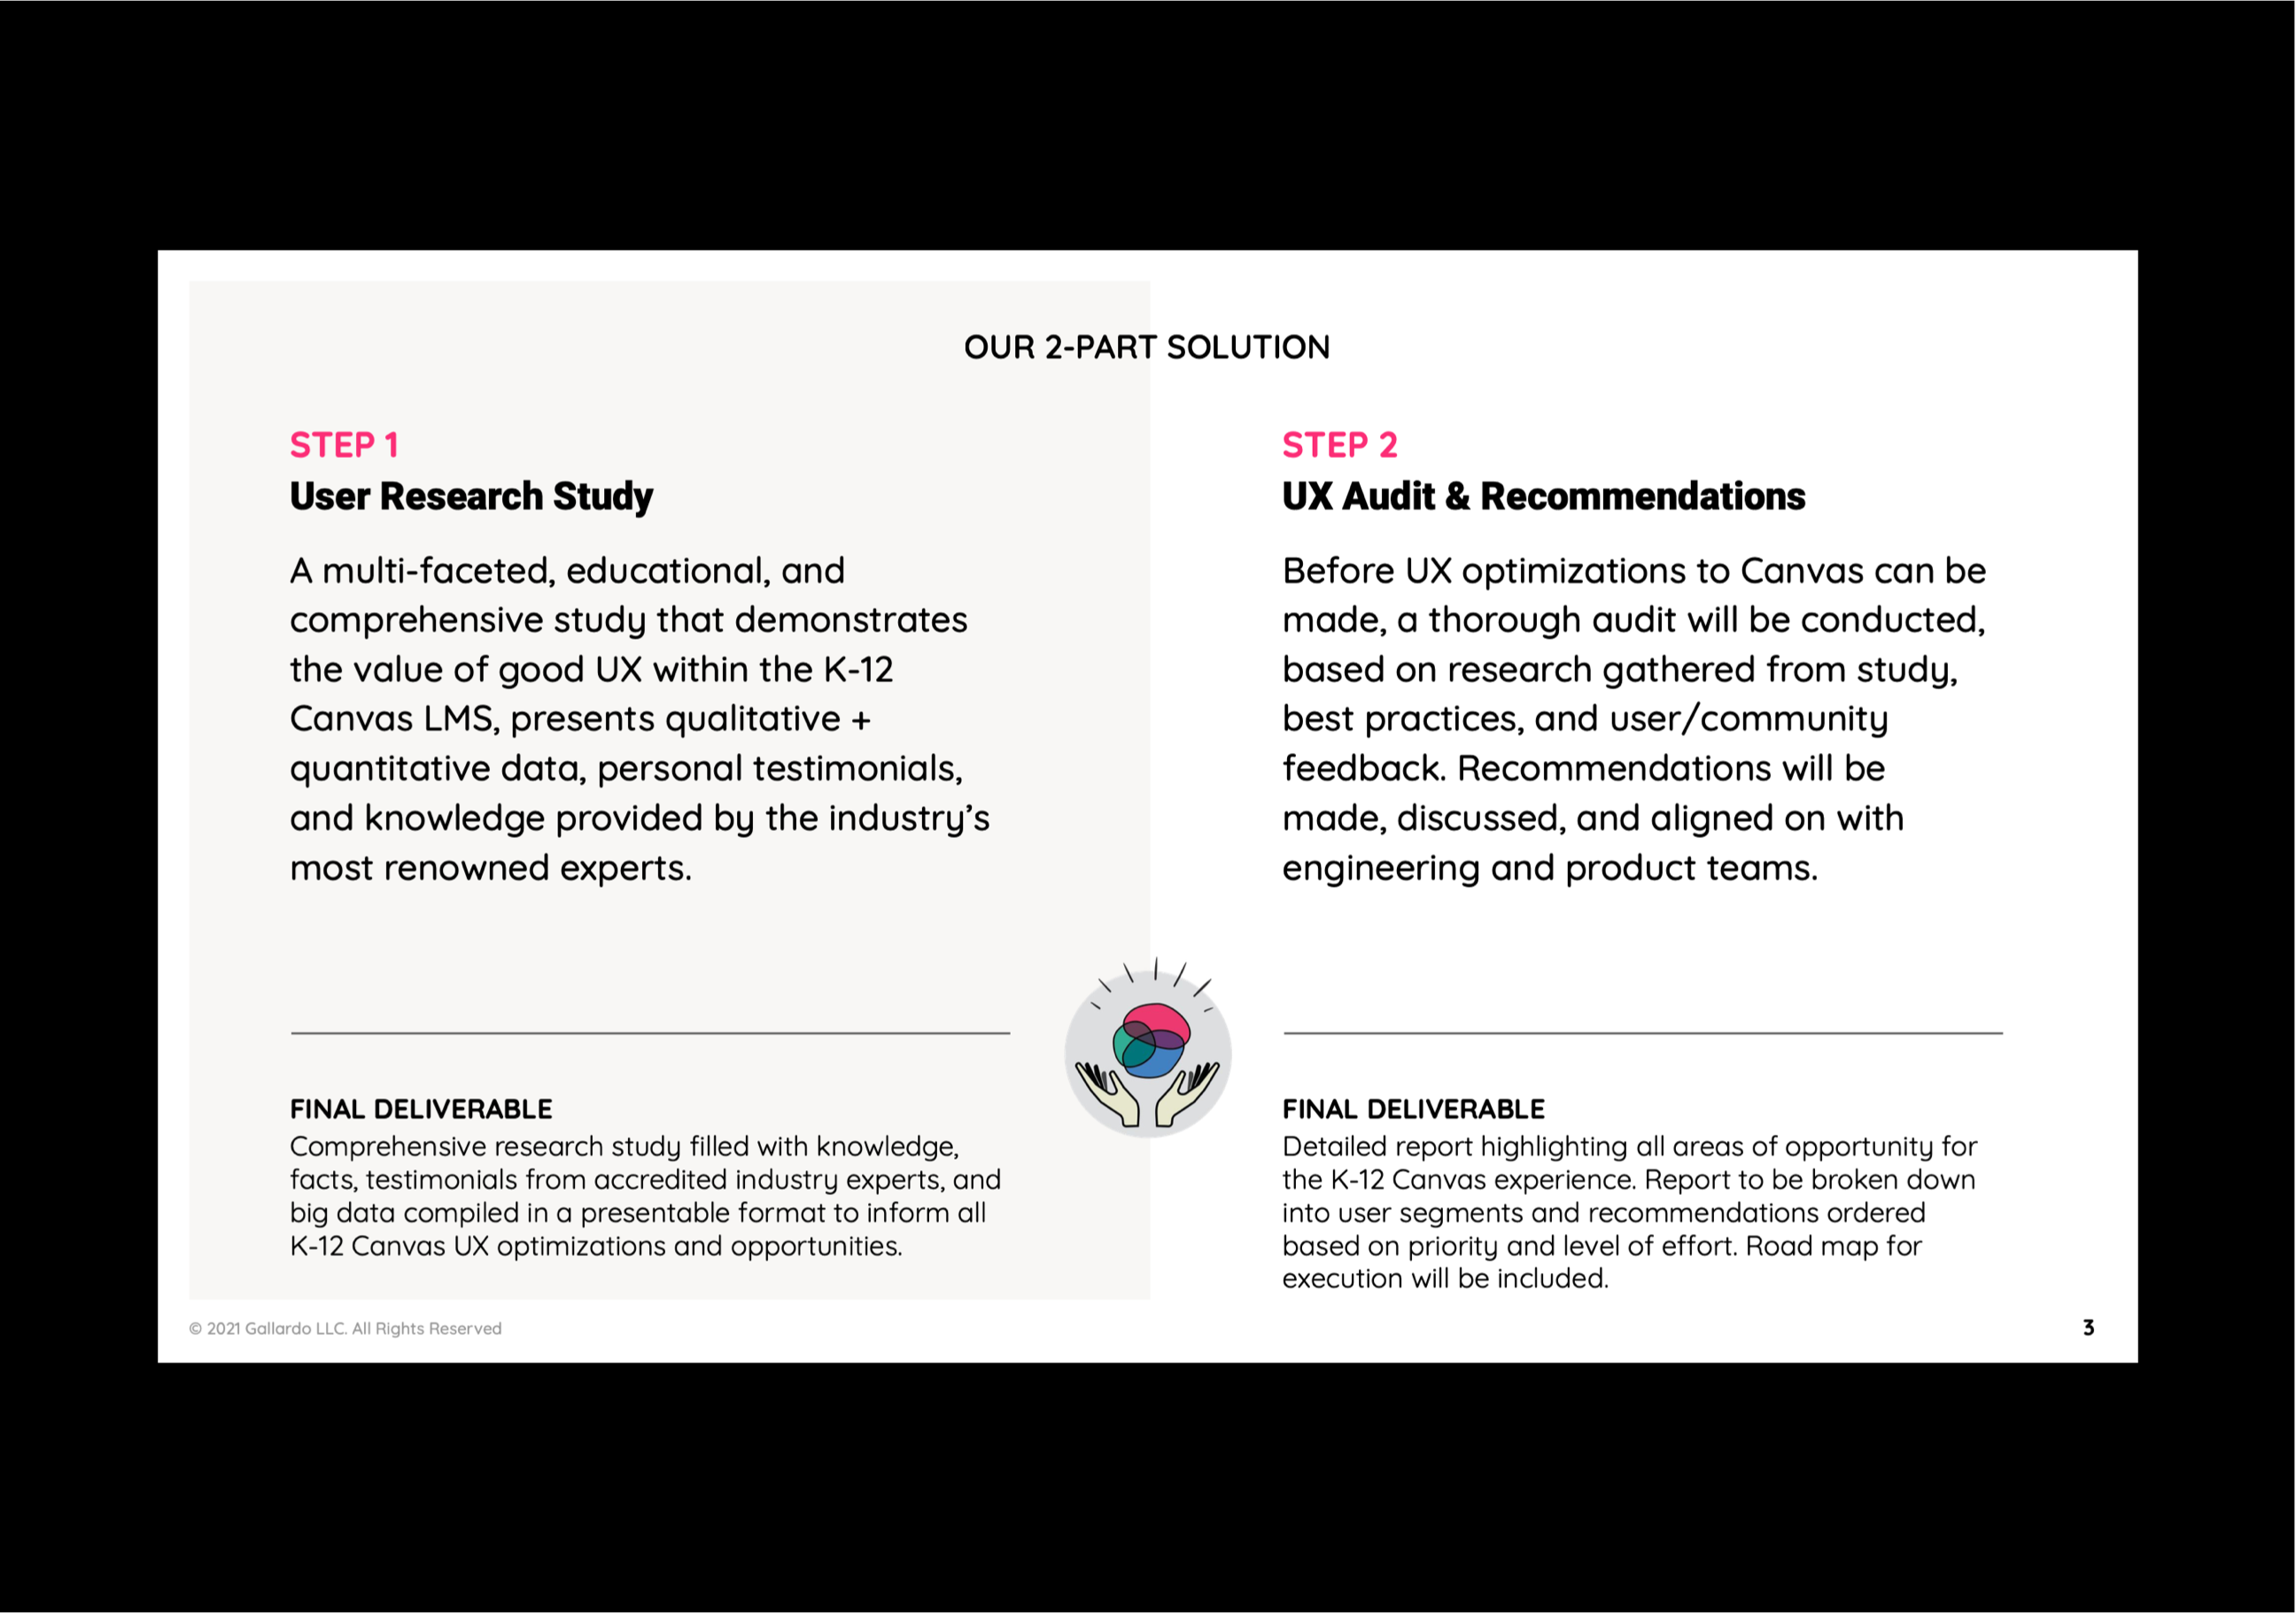 Our two-part solution. 1. User Research Study 2. UX Audit & Recommendations